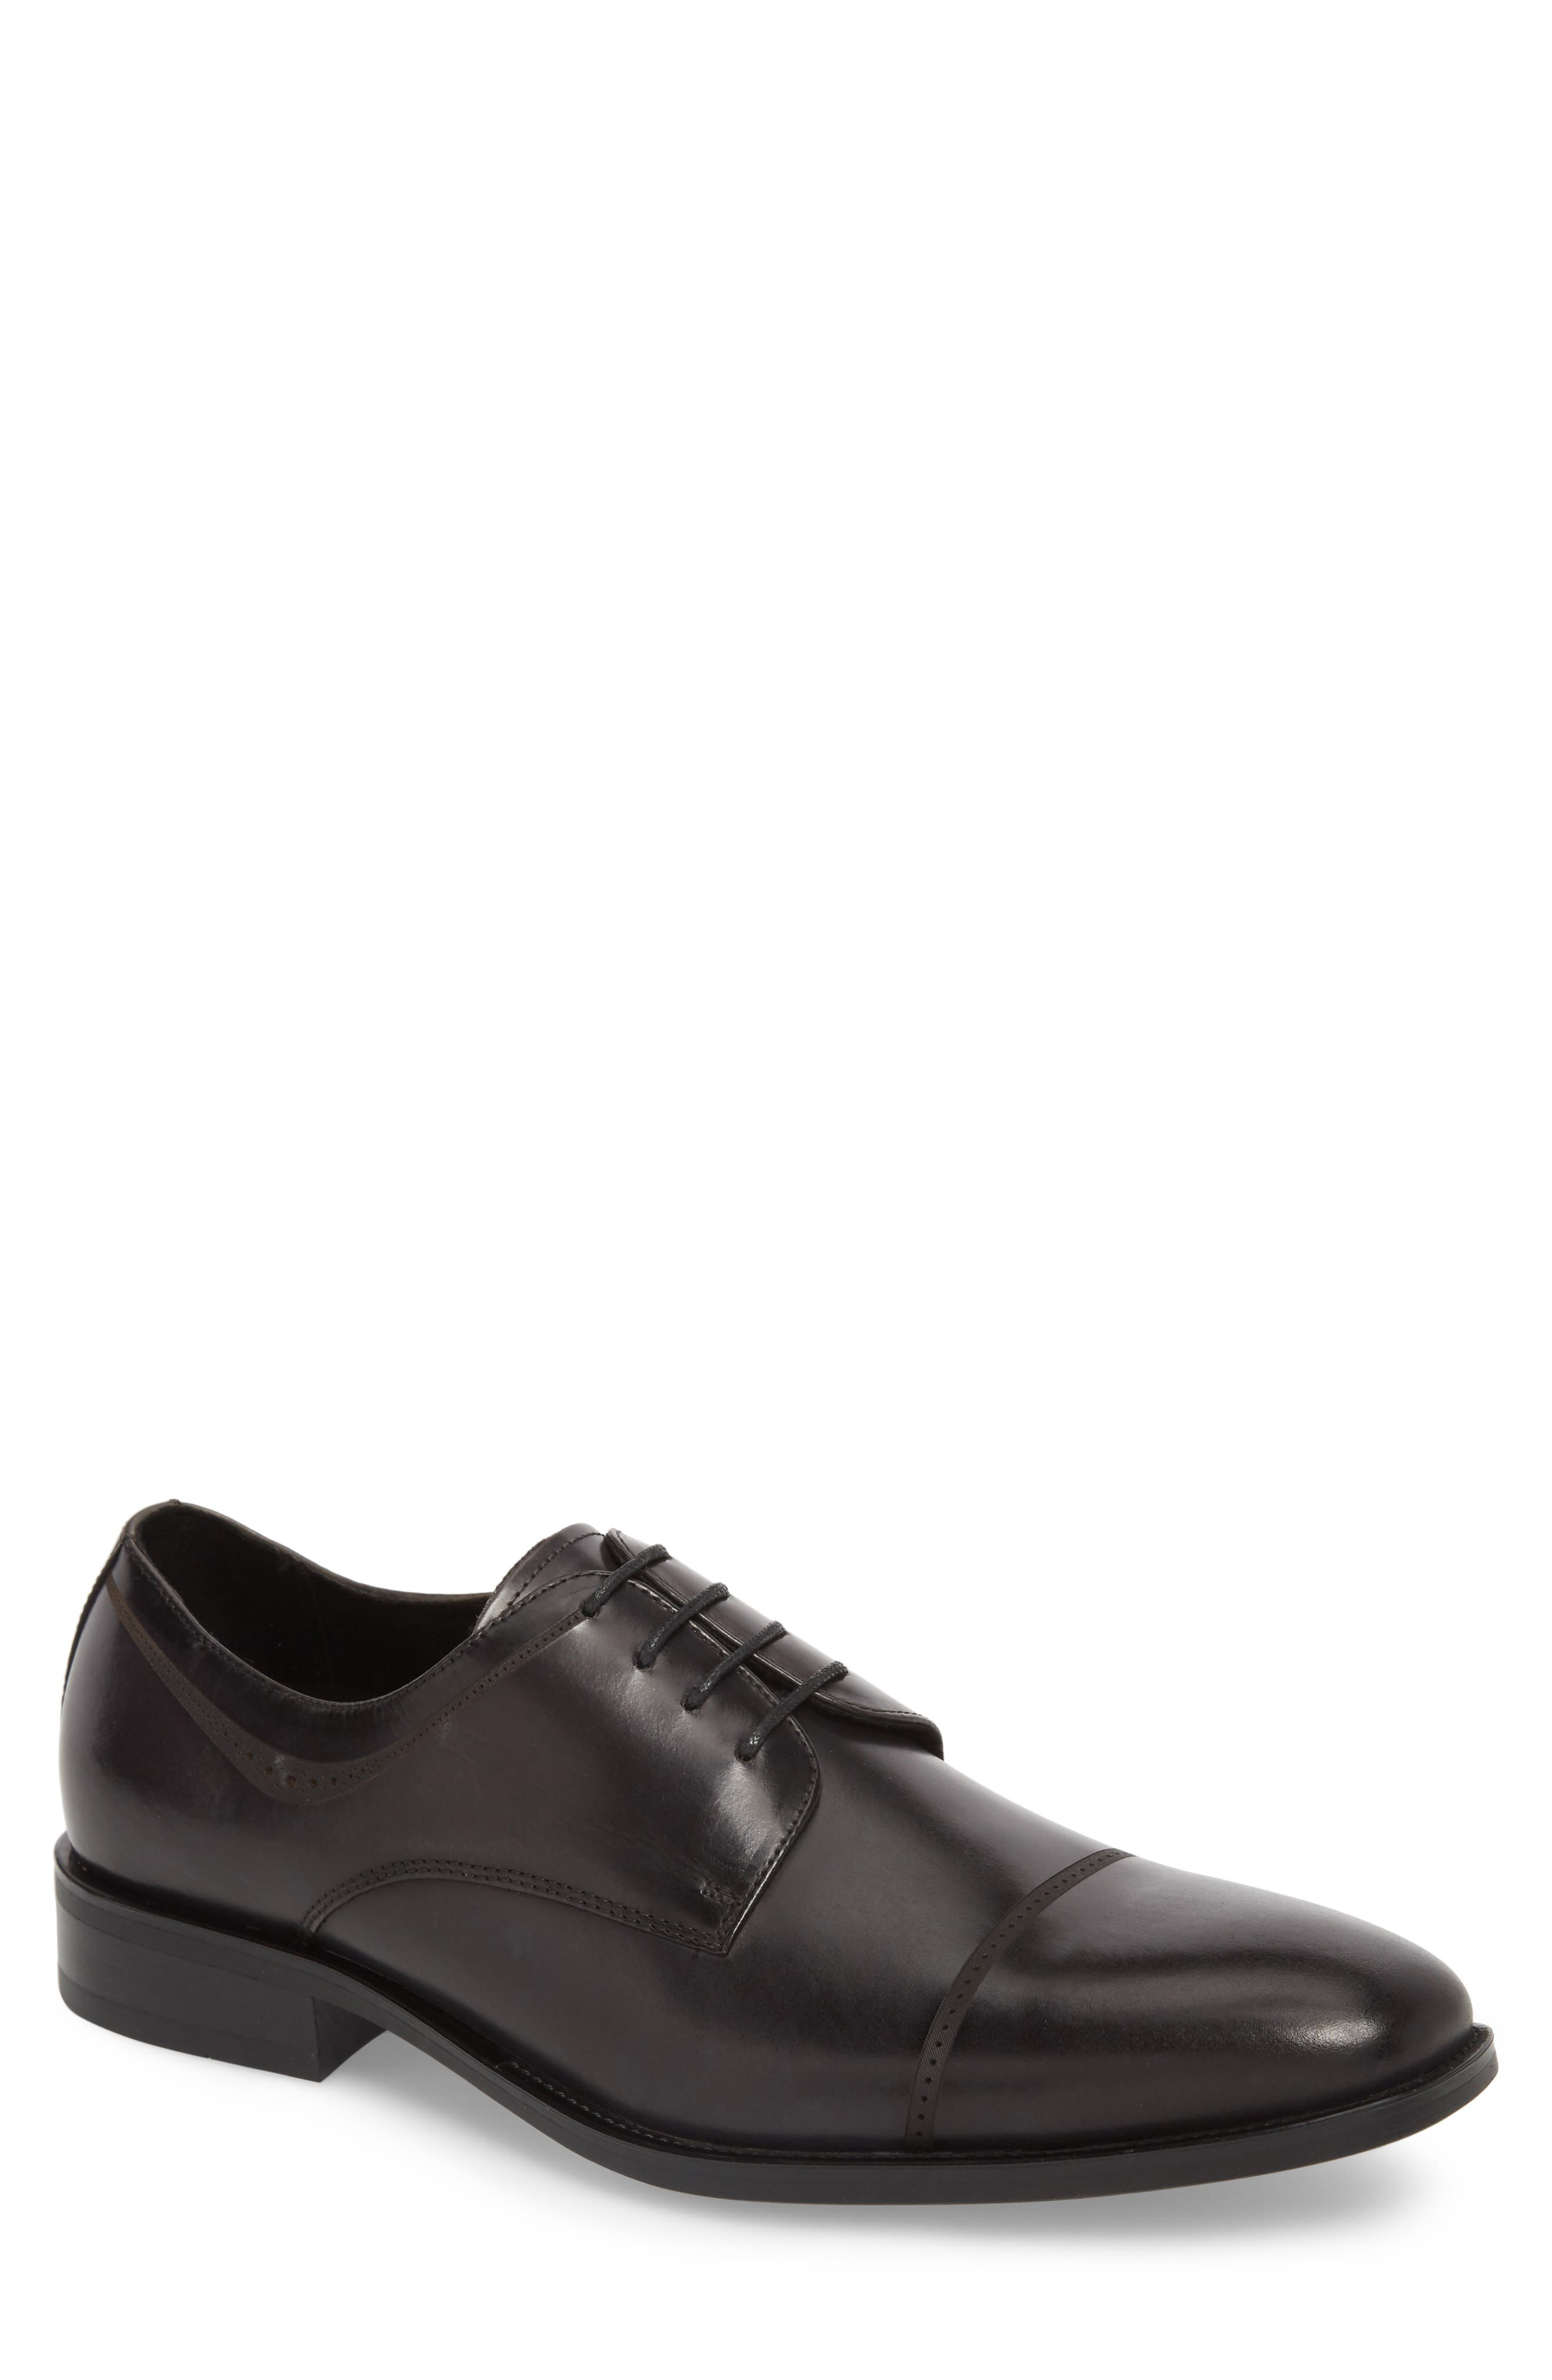 Leisure Time Cap Toe Derby,                             Main thumbnail 1, color,                             DARK GREY LEATHER